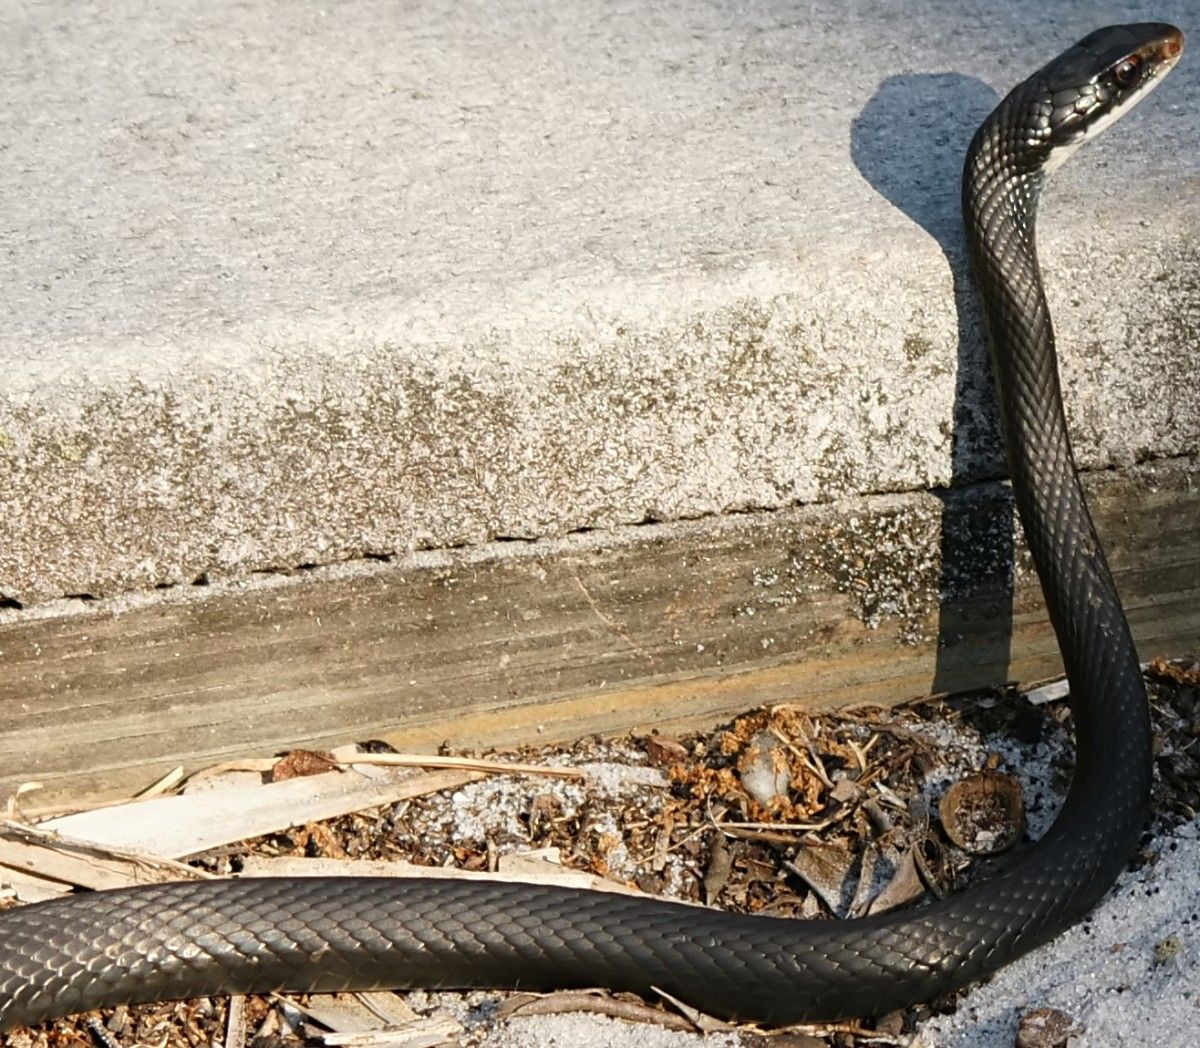 Southern Black Racer (Coluber constrictor priapus) found in southern third of the state.